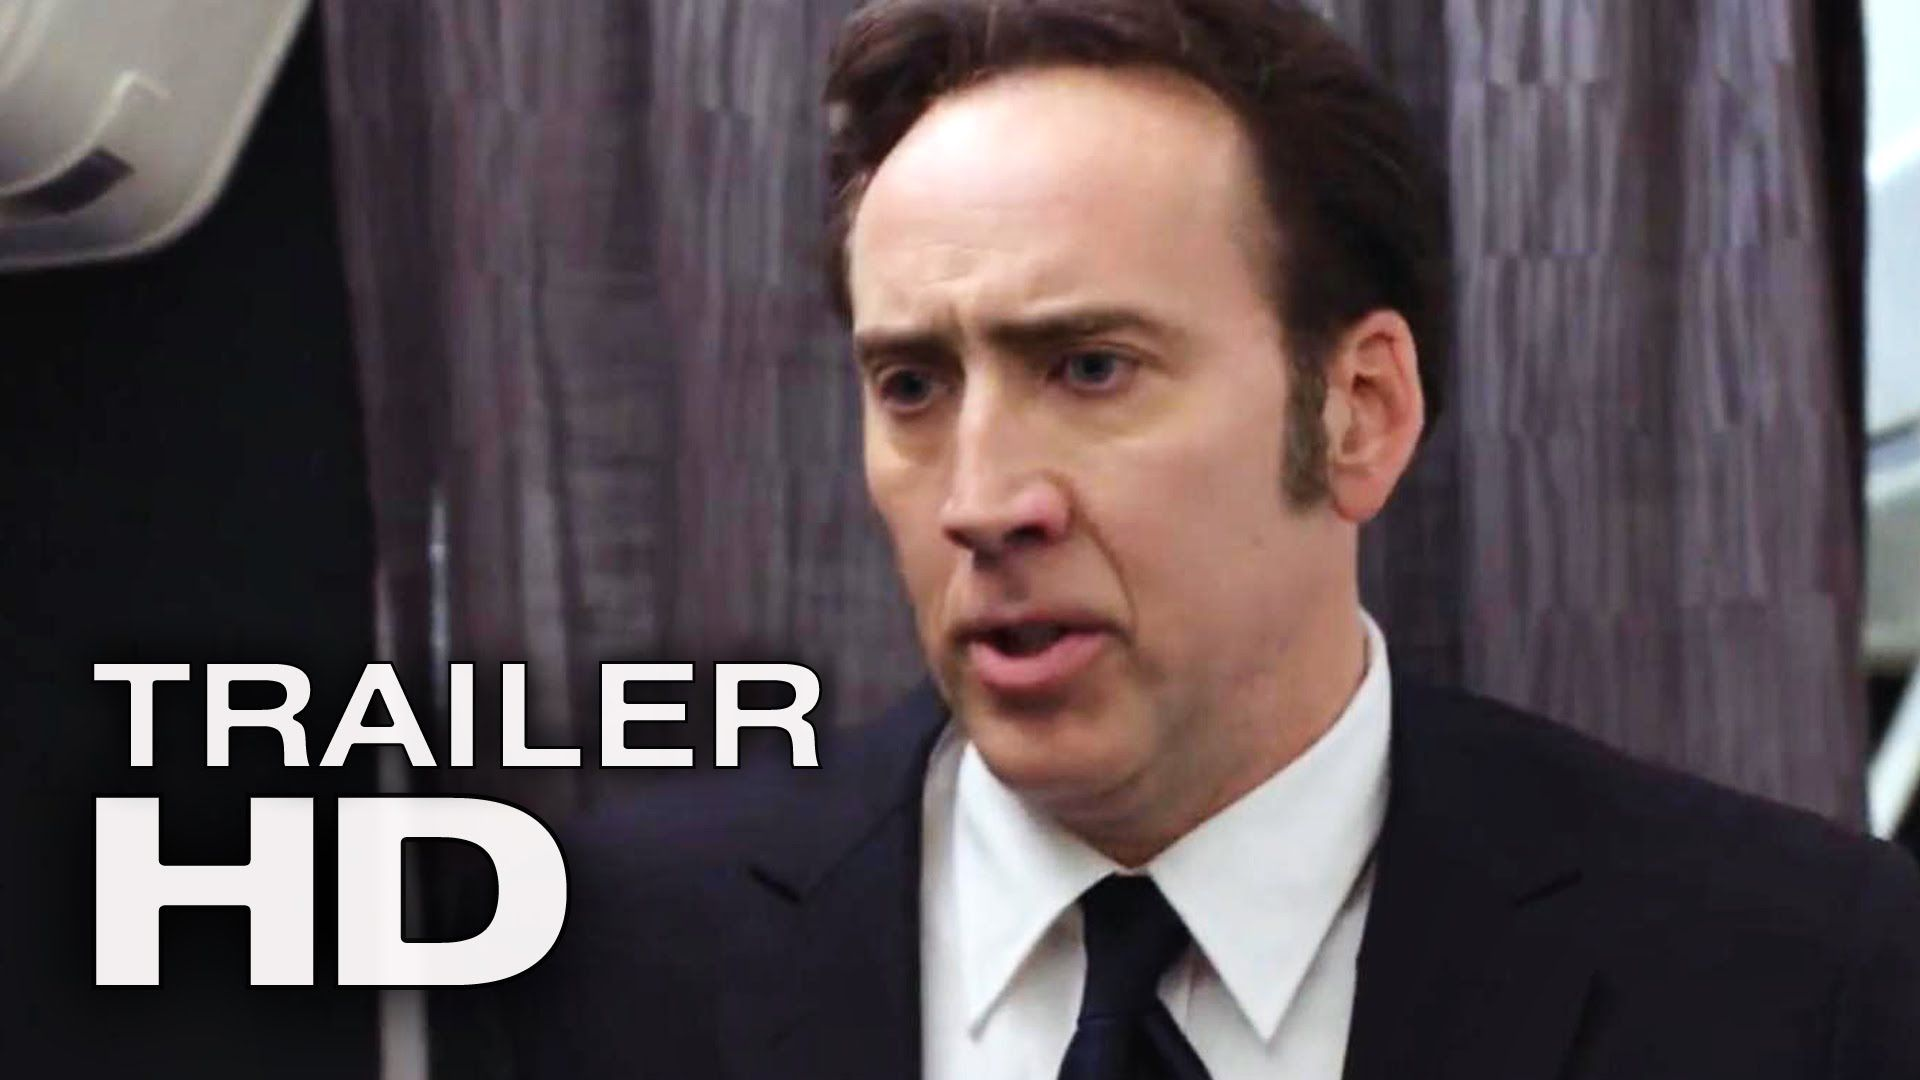 Pin On Trailer 2011 2014